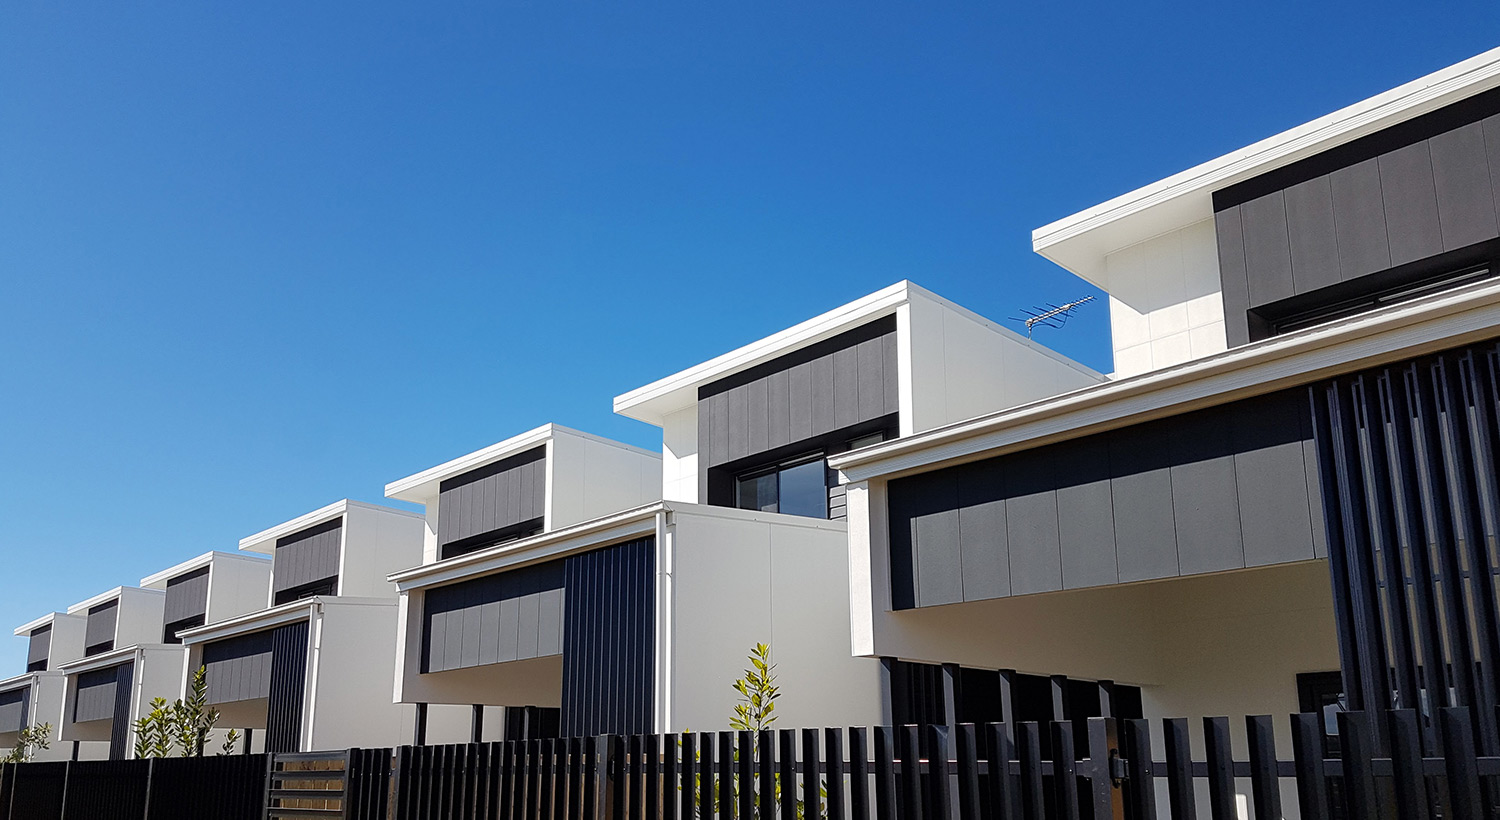 Hebel Hoist makes the work easy at 'Lure by Mosaic' development